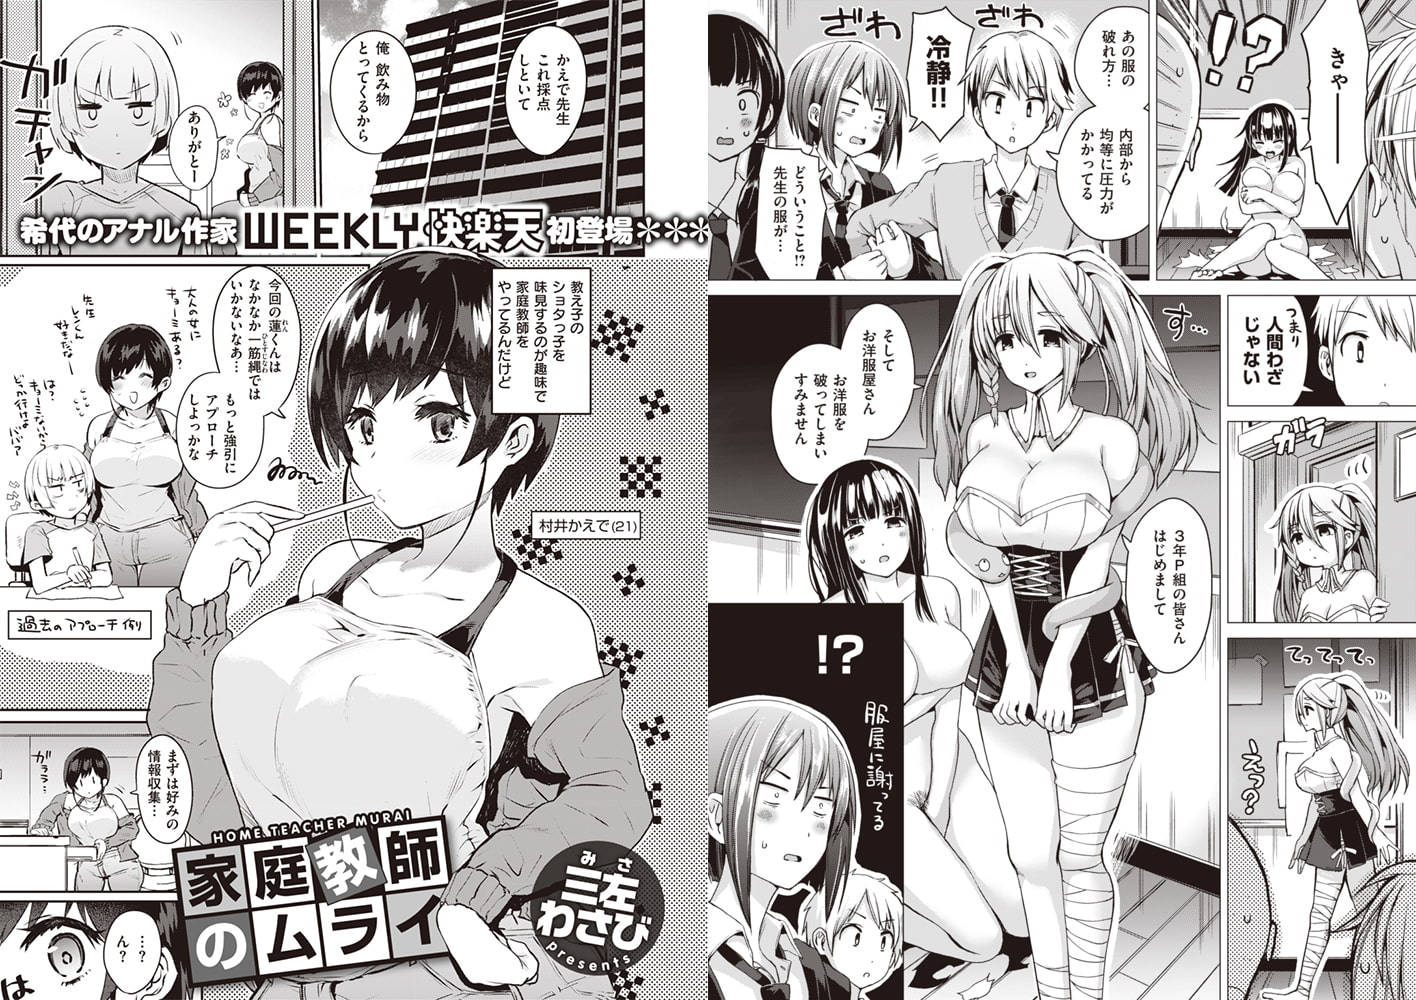 WEEKLY快楽天SELECTION#02